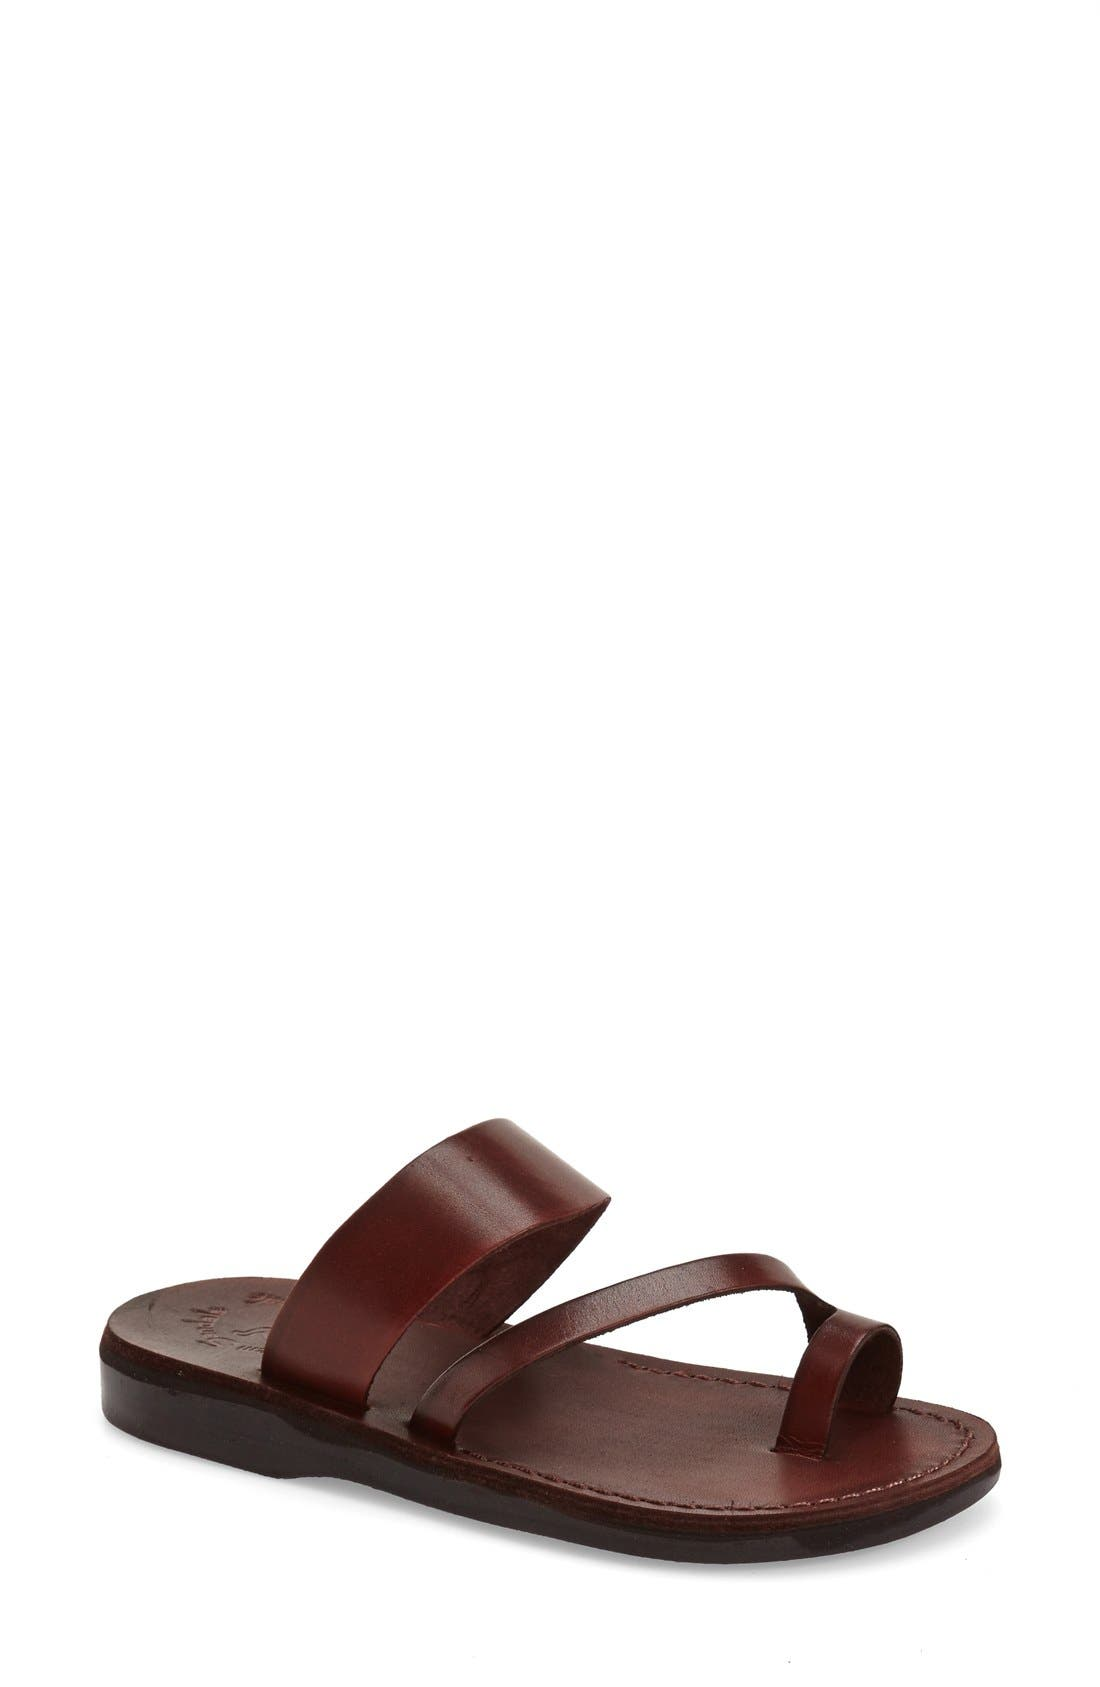 'Zohar' Leather Sandal,                             Main thumbnail 5, color,